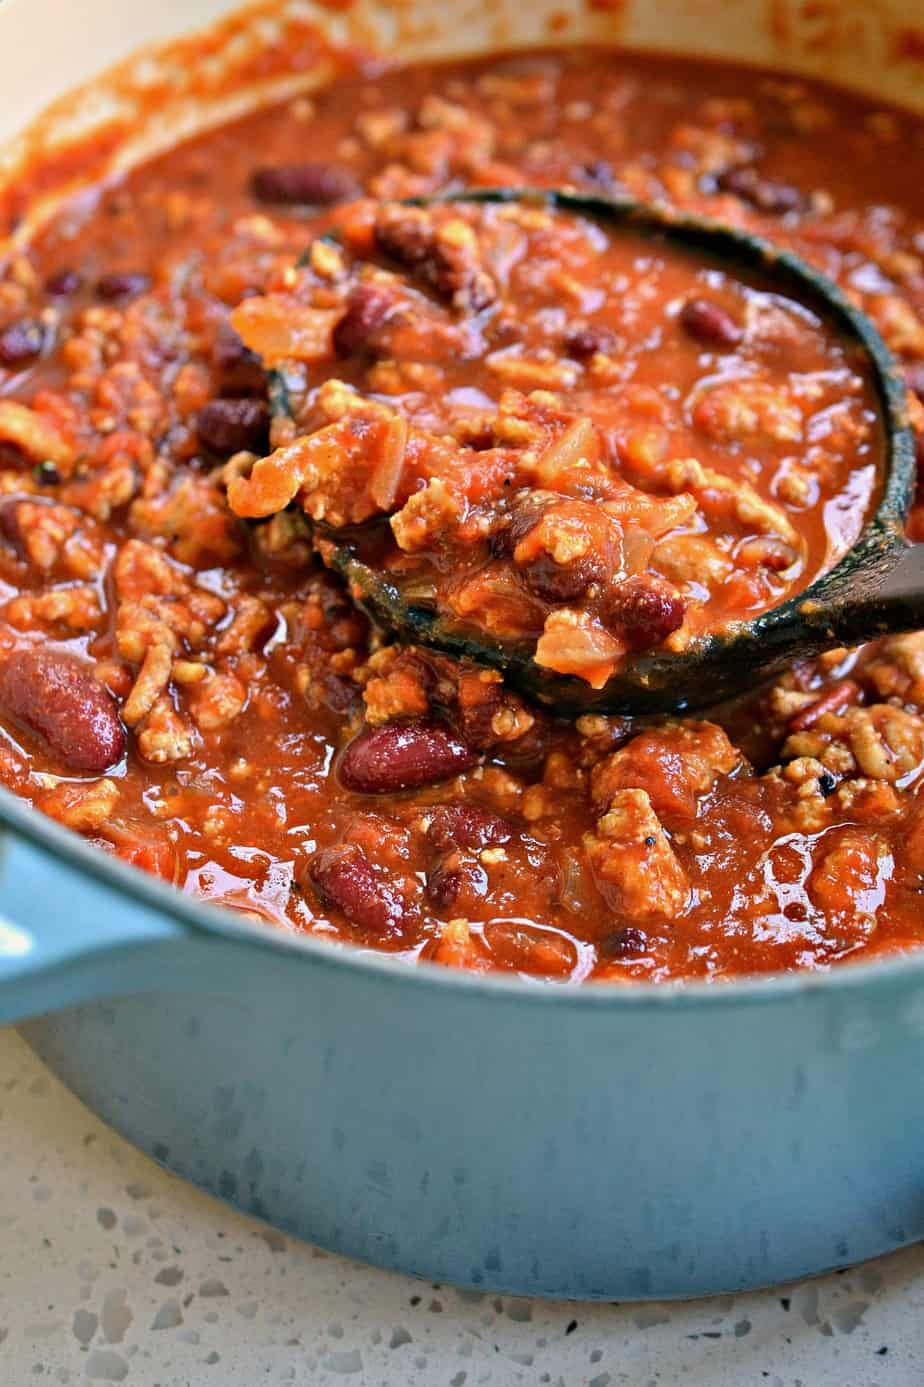 How to make Ground Turkey Chili